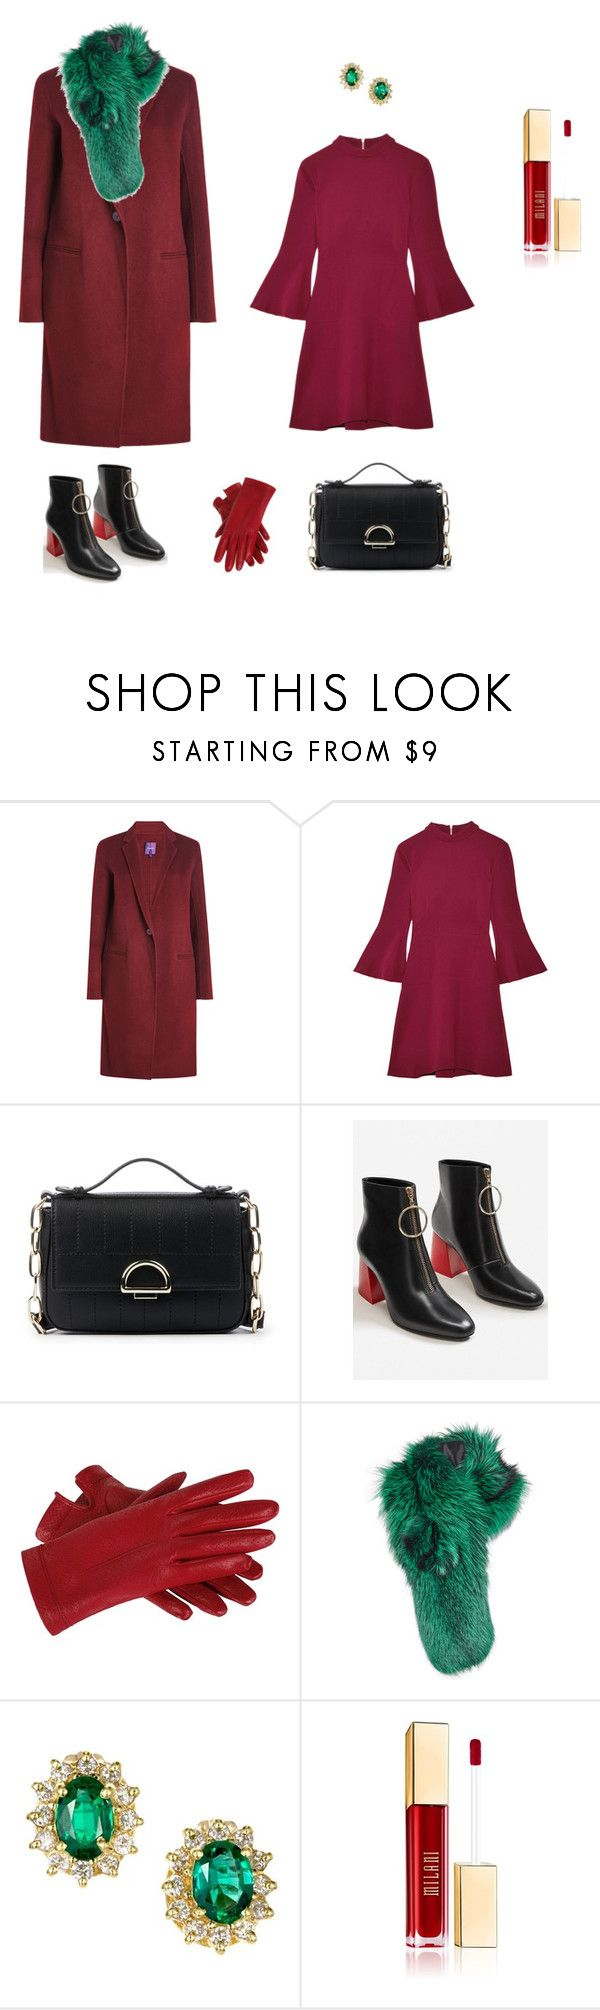 """Образ для броши с матрешкой"" by lerobe on Polyvore featuring мода, Theory, Rachel Zoe, Sole Society, MANGO и Lilly e Violetta"